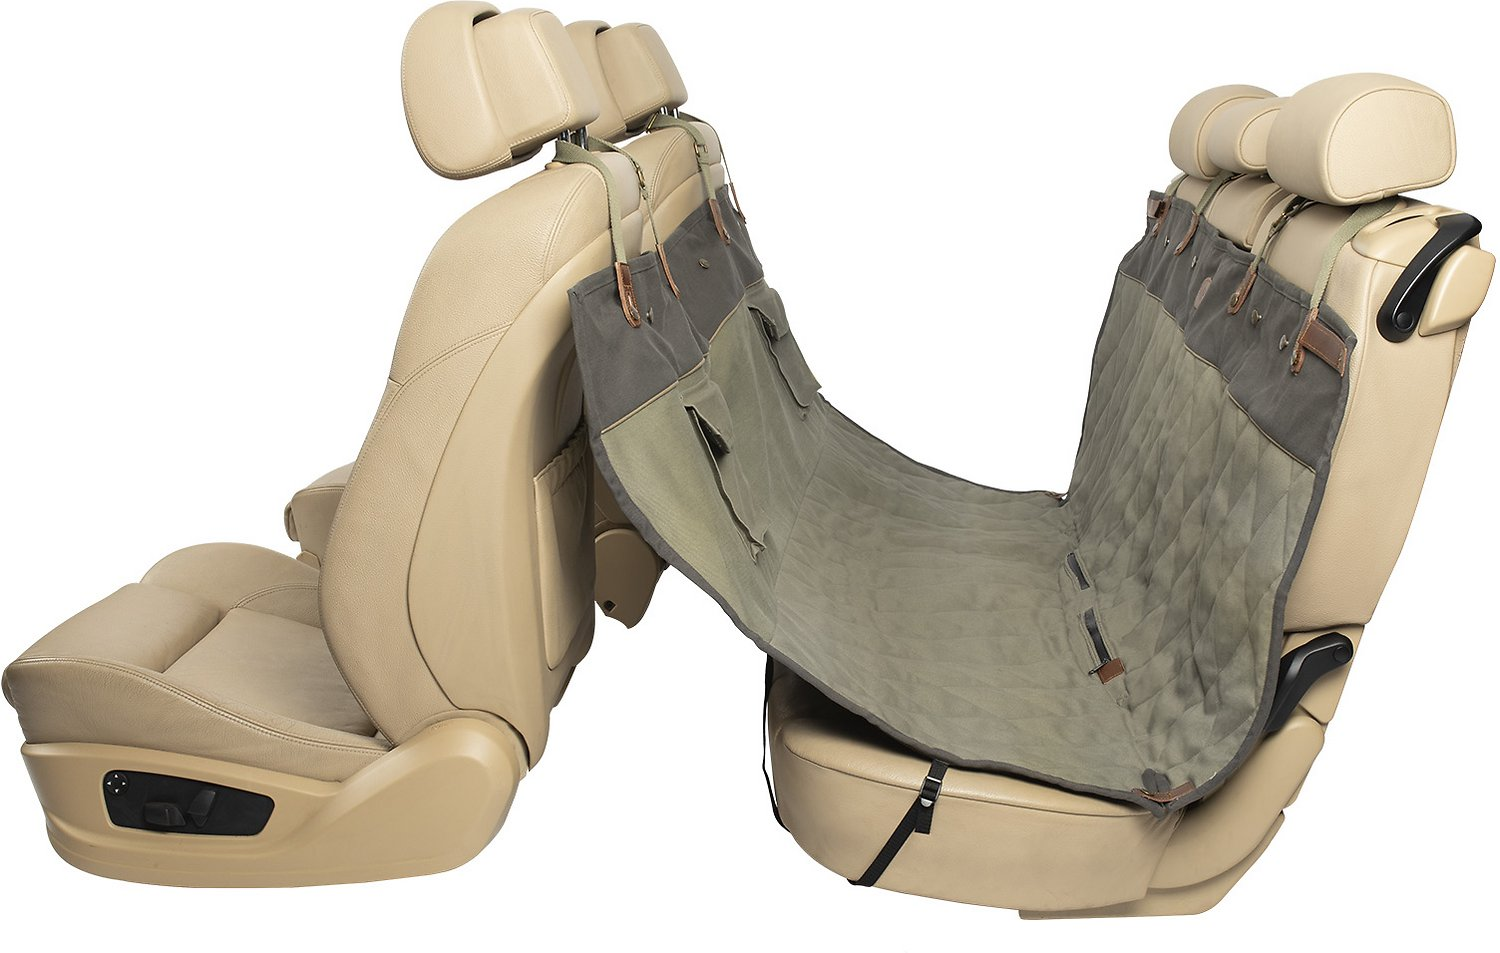 solvit dog car seat instructions